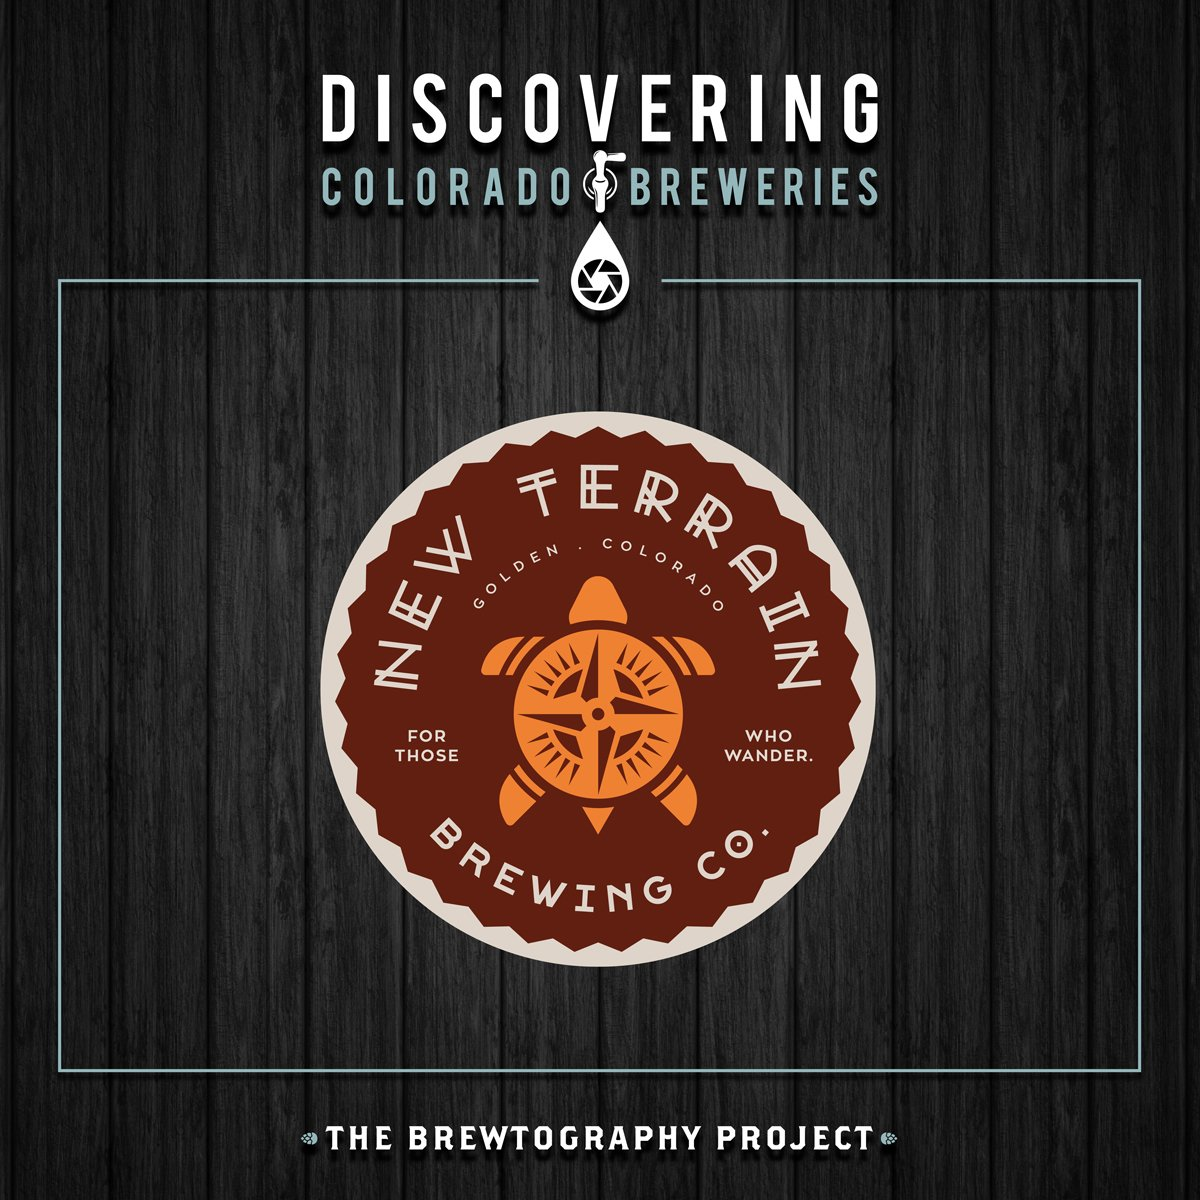 Confirmed Brewery: Discovering Colorado Breweries   @newterrainbrew #Golden #Colorado ( http:// brewtographyproject.com/book  &nbsp;  )<br>http://pic.twitter.com/uDMYJoR5i5